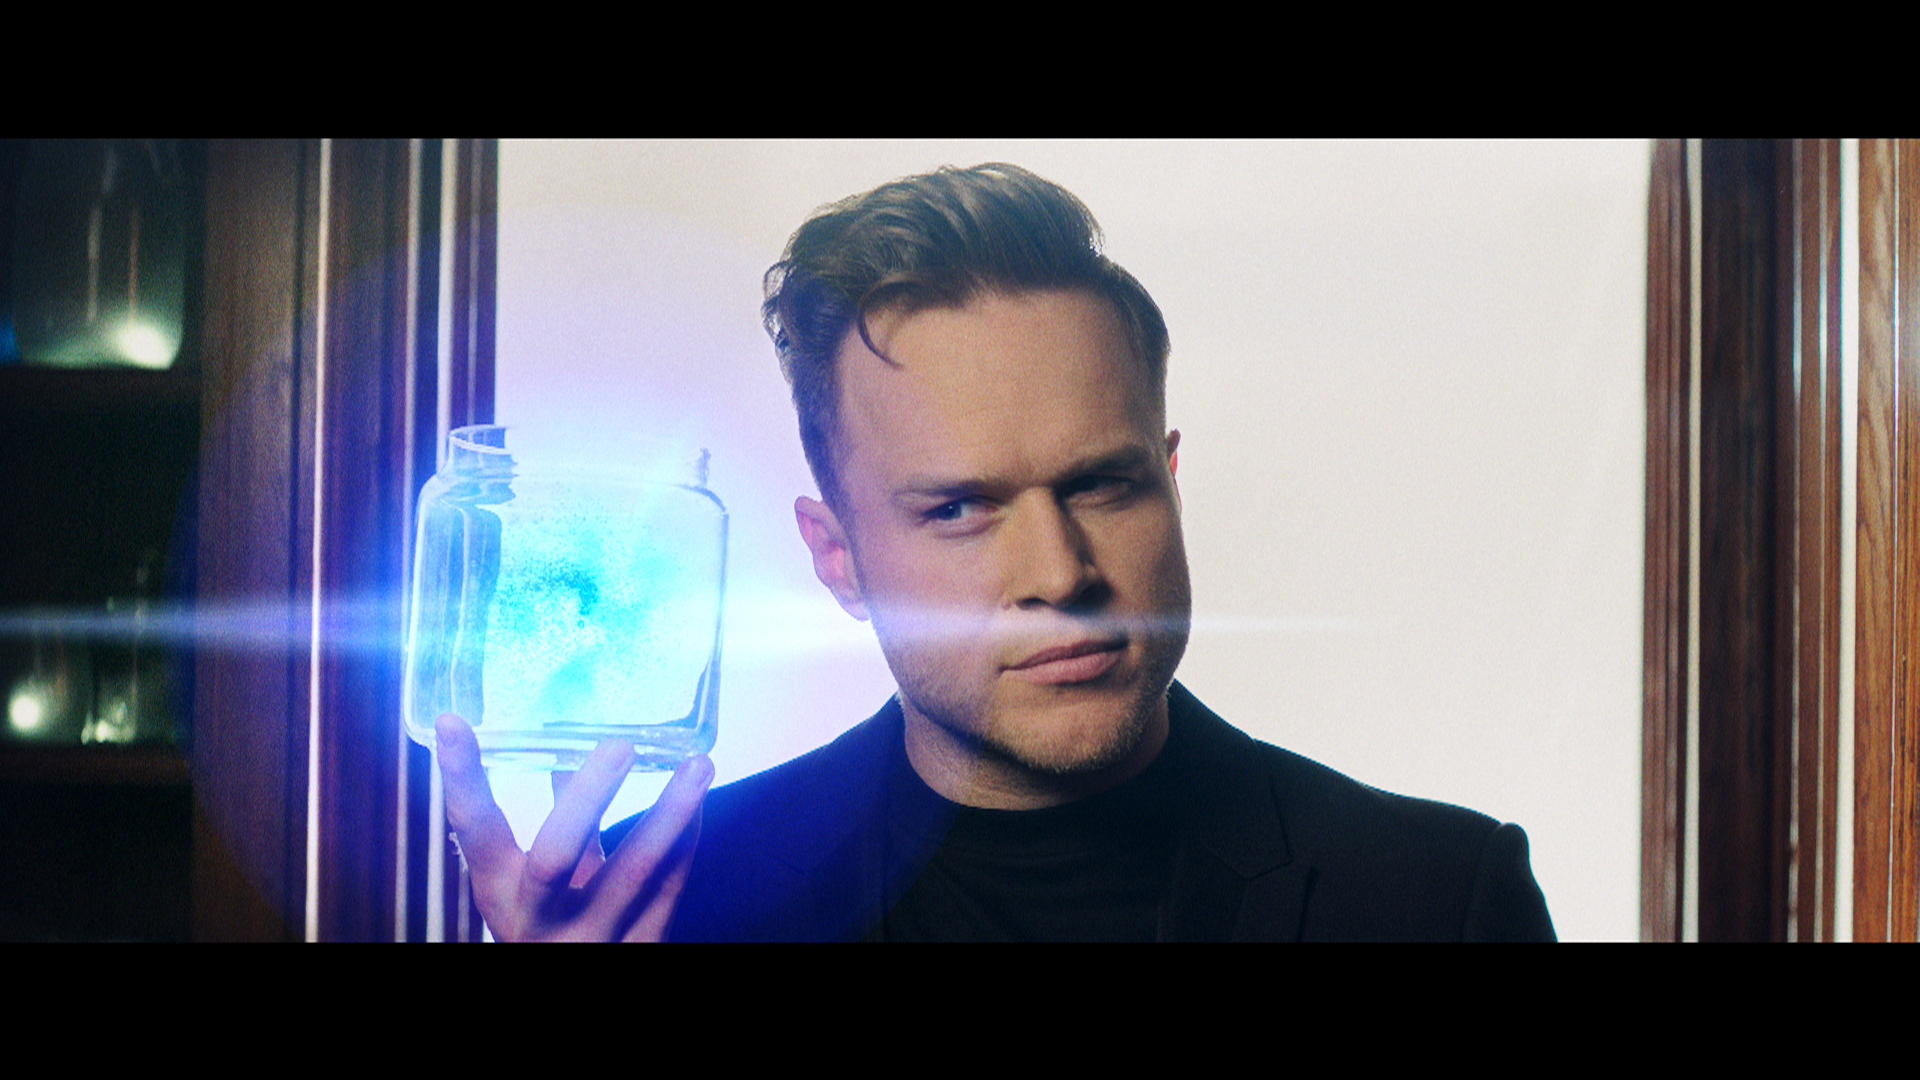 First glimpse of Olly Murs as The Voice UK judge in new trailer